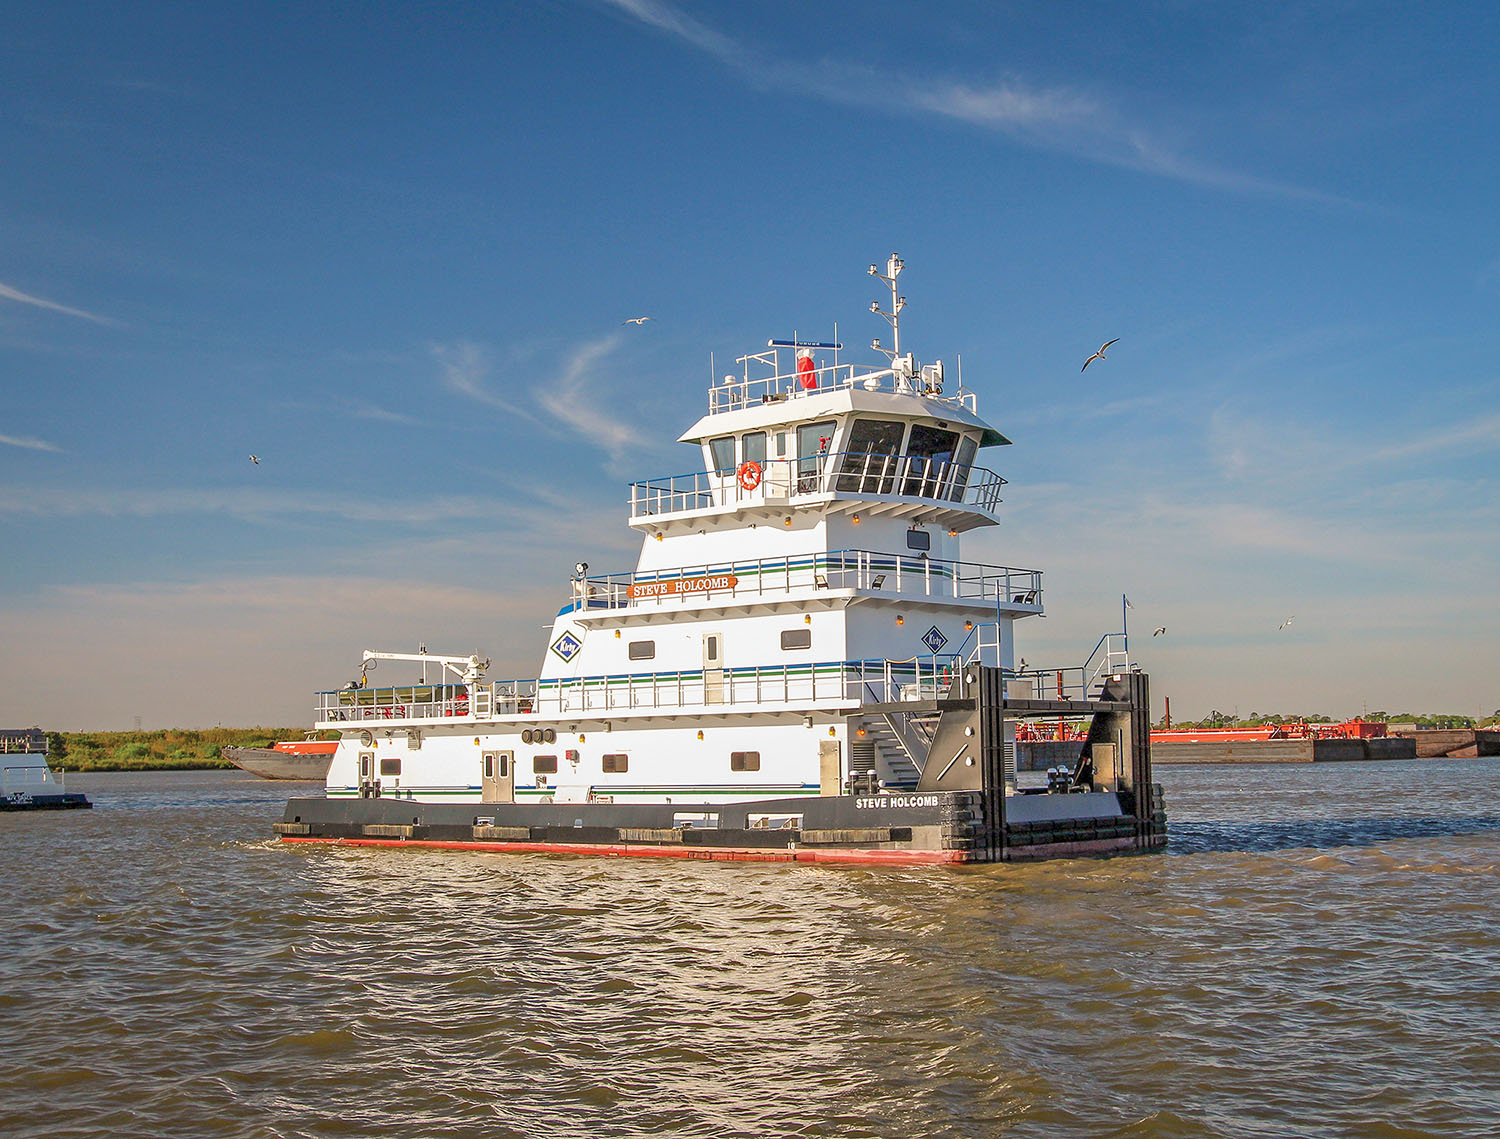 The mv. Steve Holcomb is the first boat to come out of San Jac Marine LLC, Kirby's new shipyard on the site of the former Sneed Shipbuilding. (Photo courtesy of Kirby Inland Marine)